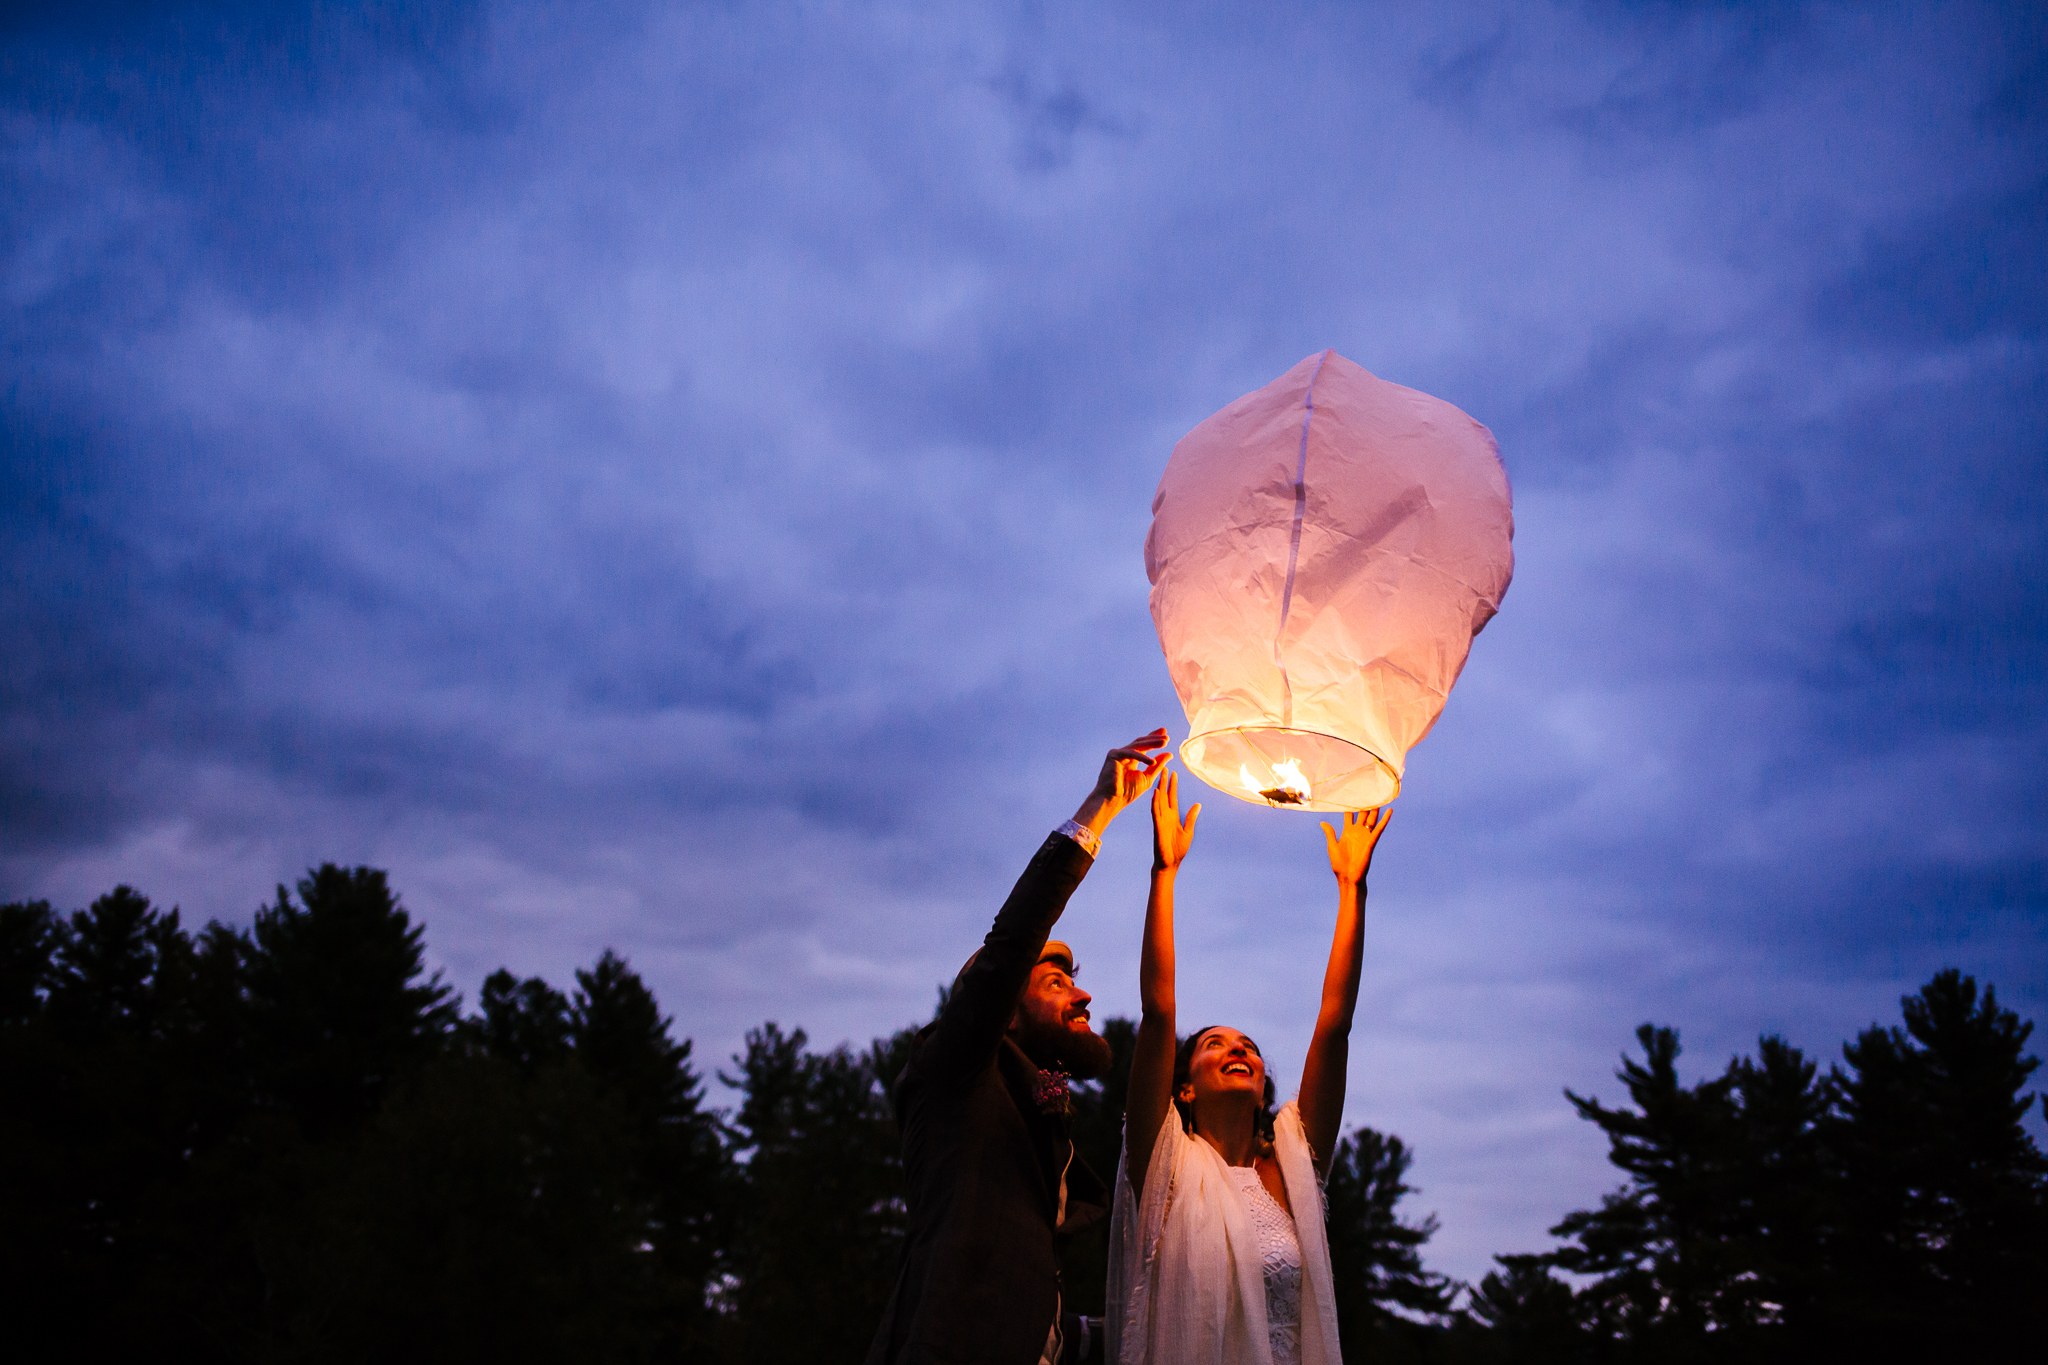 Bride and groom release a chinese lantern into a blue evening sky on their wedding night. The wedding photography is done by a Syracuse wedding photographer.